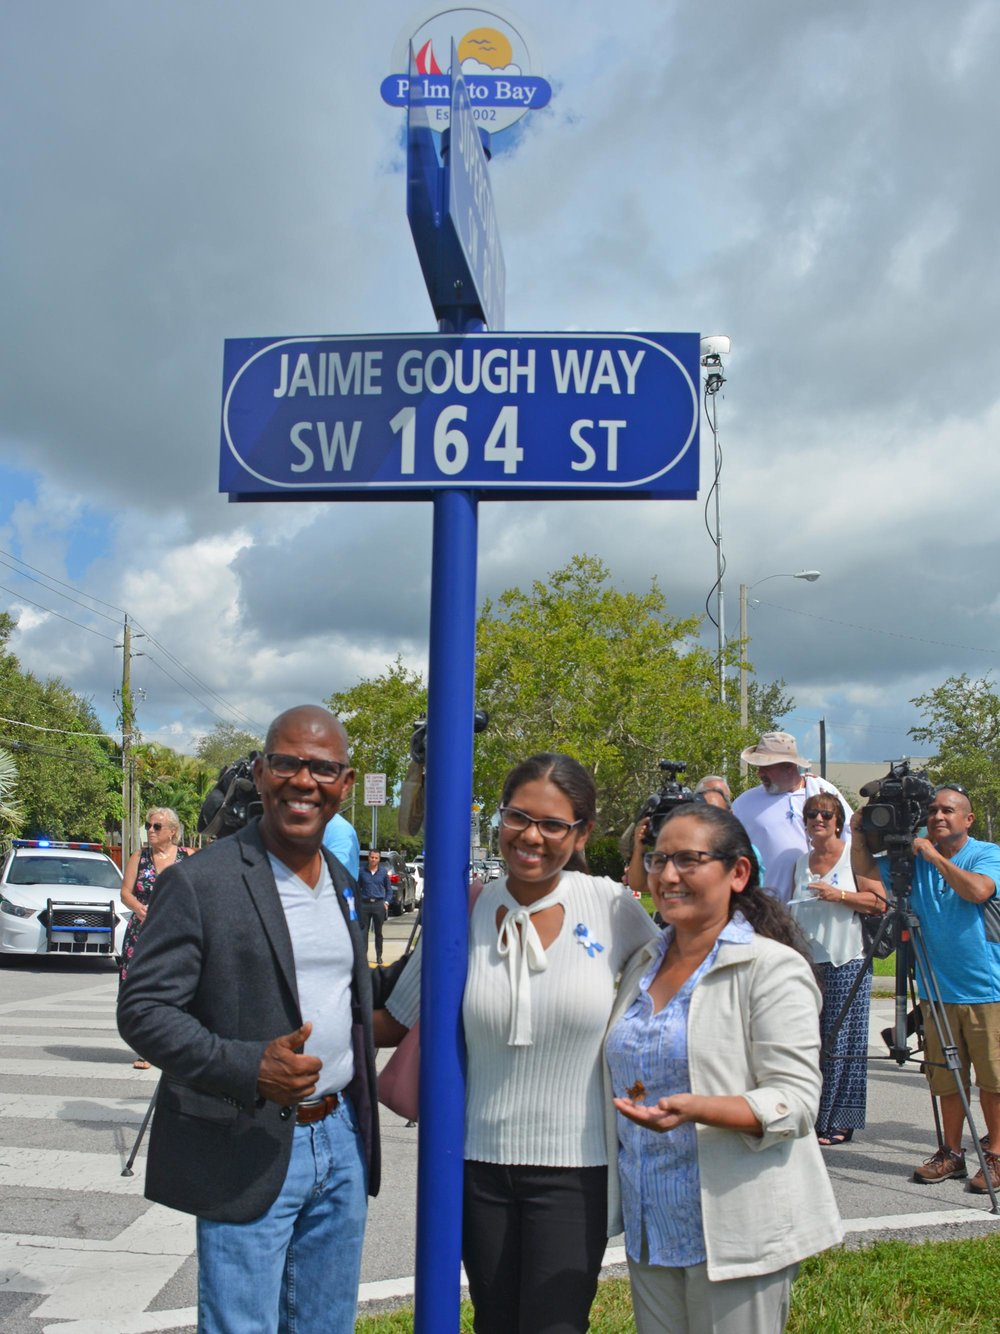 Jaime's family under the sign includes his father Jorge, mother Maria and sister, Brenda